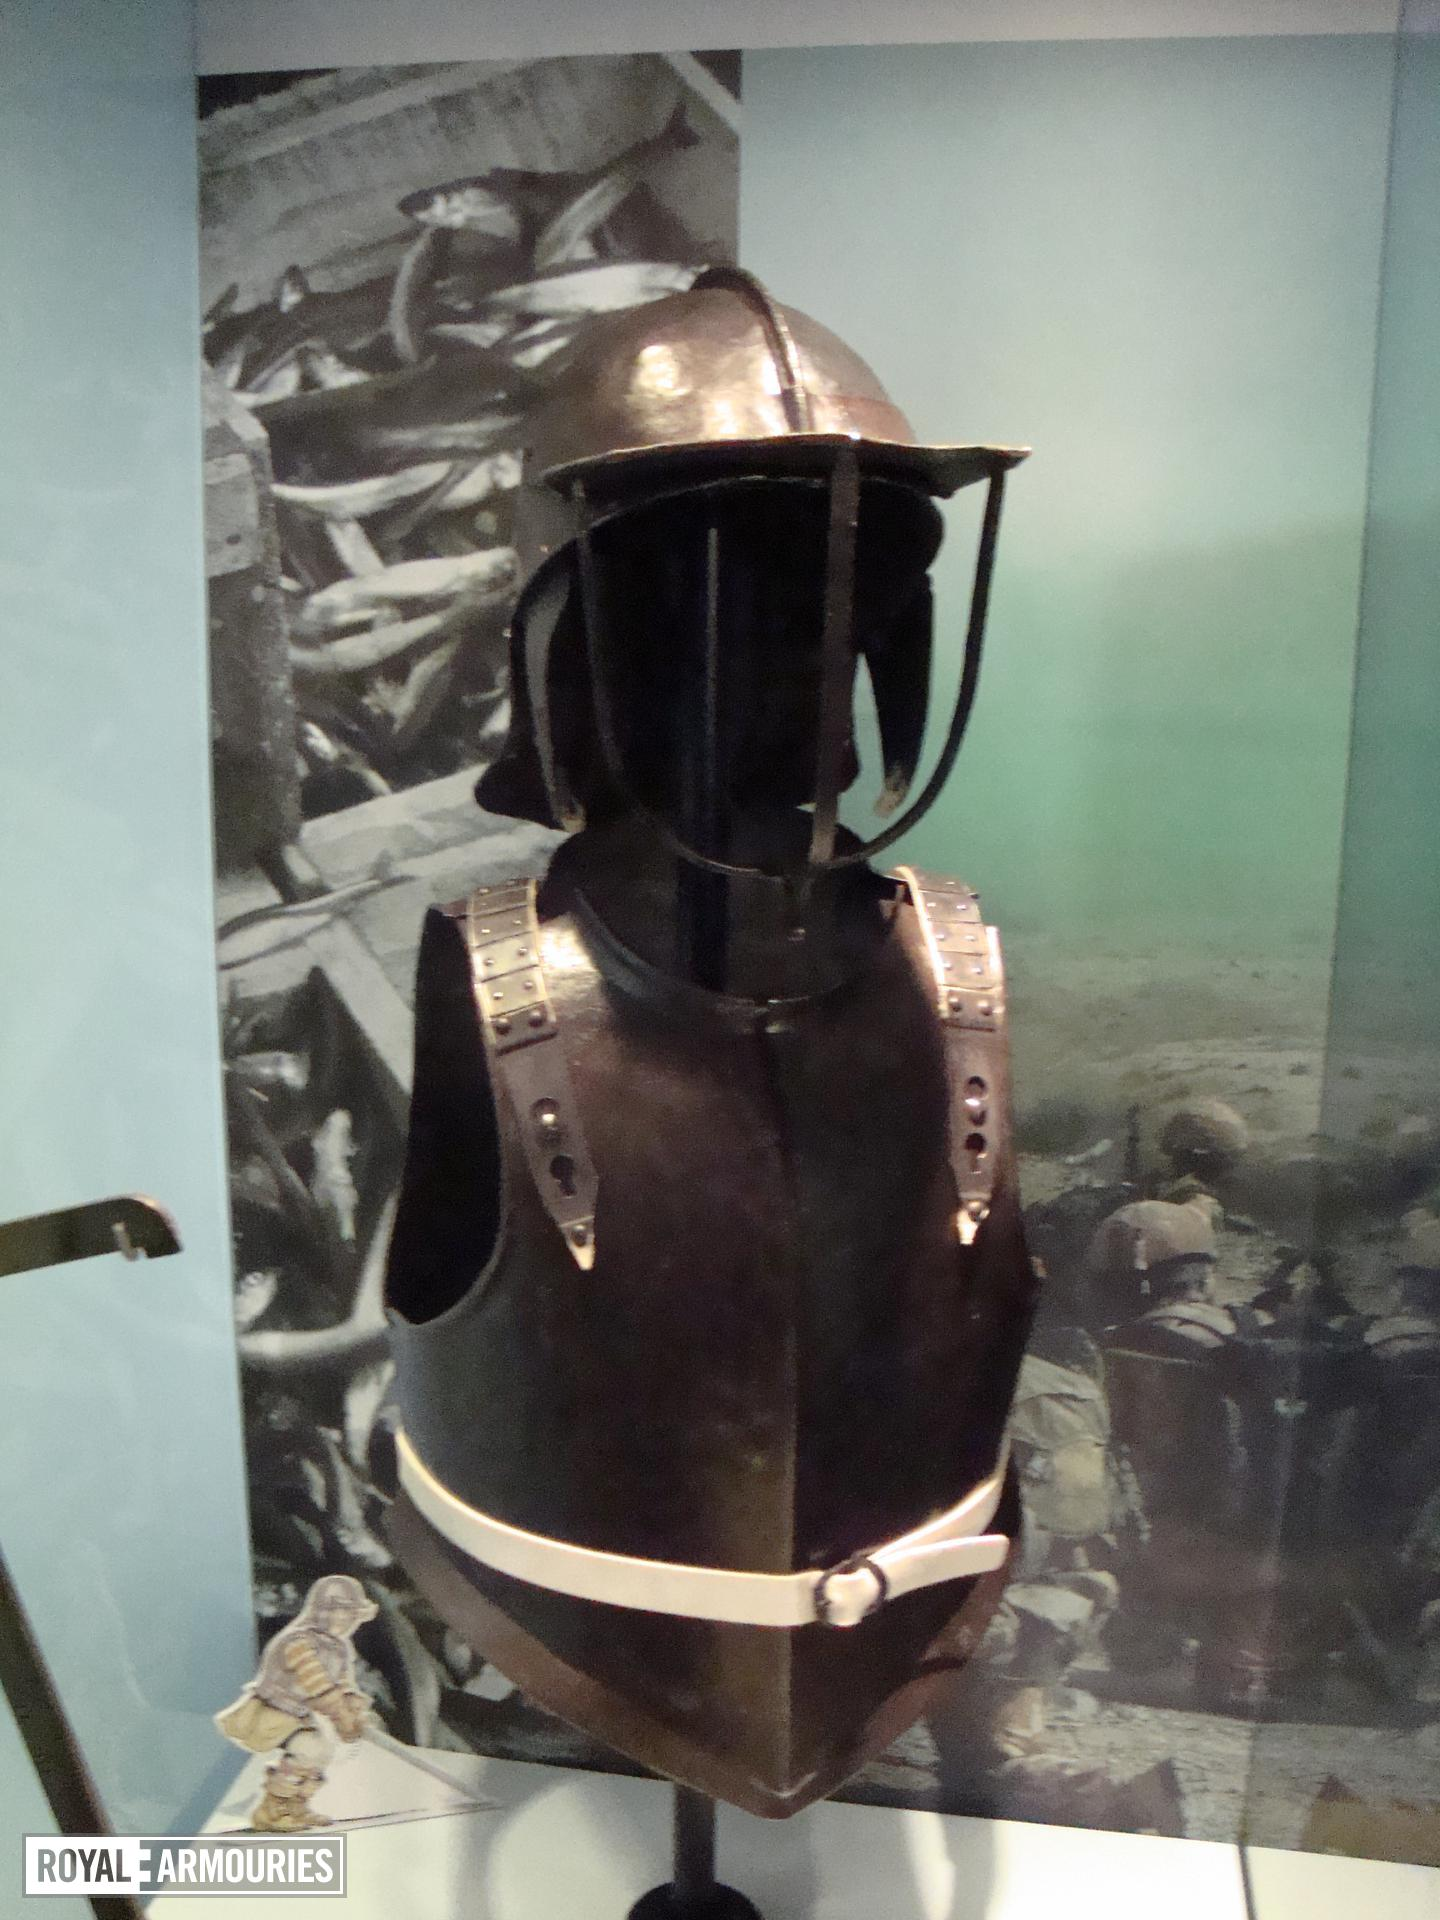 The breatplate on display with the rest of the armour in Liverpool.